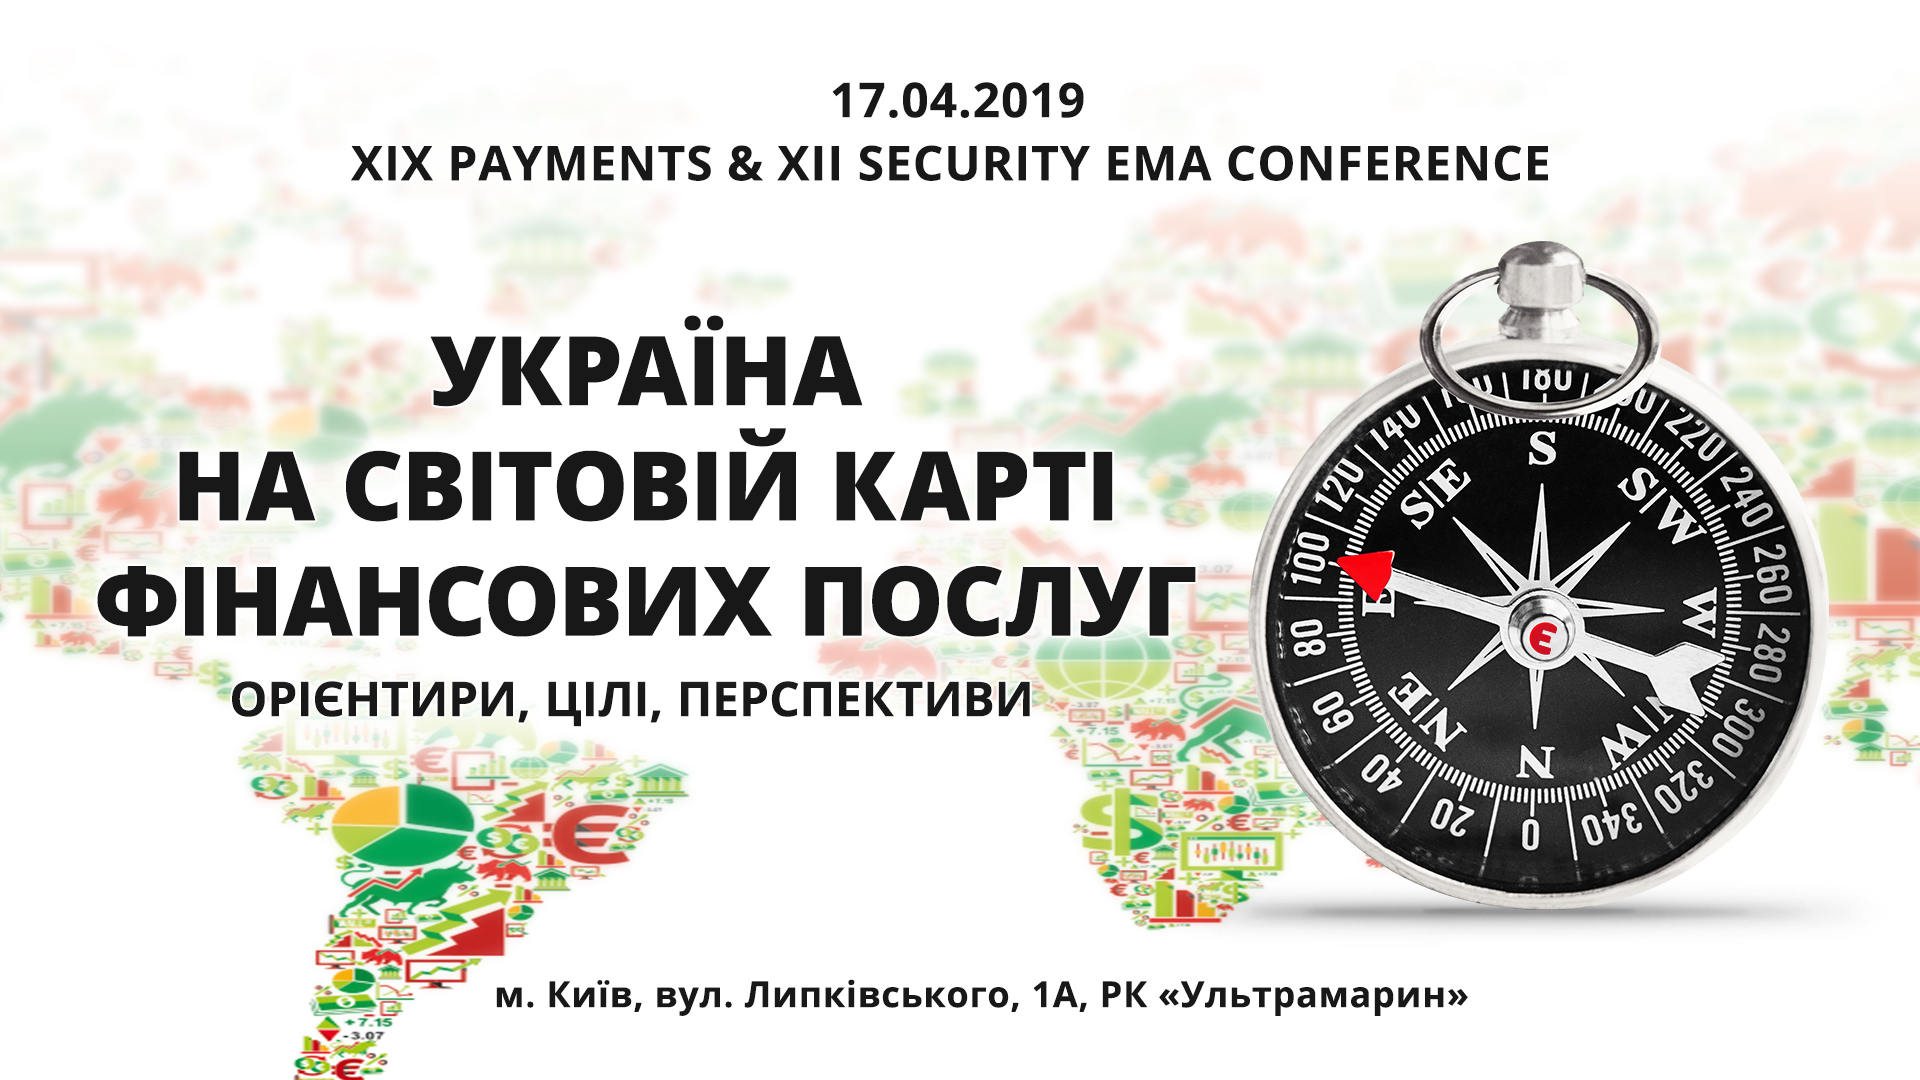 XIX Payments & XI Security EMA Conference